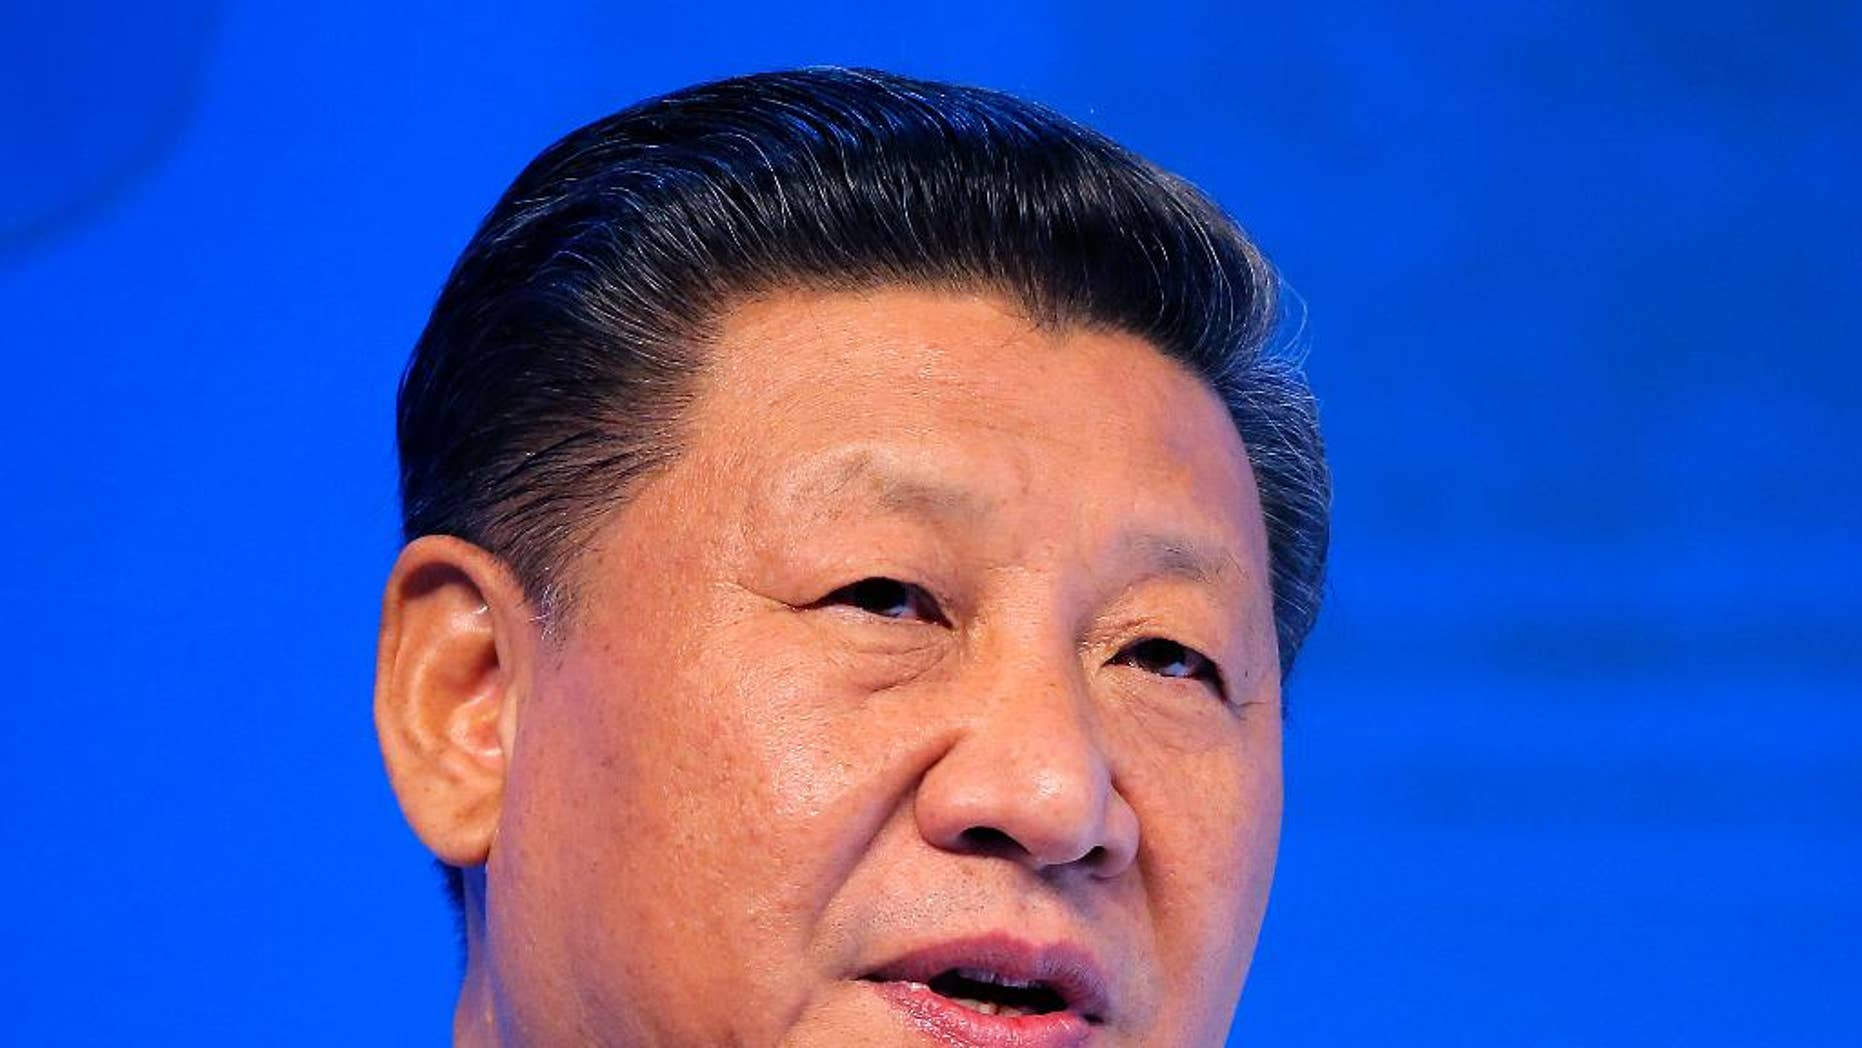 """FILE - In this  Jan. 17, 2017, file photo, Chinese President Xi Jinping speaks at the World Economic Forum in Davos, Switzerland. U.S. President Donald Trump has reaffirmed America's long-standing """"one China"""" policy in a telephone conversation with Xi that could alleviate concerns about a major shift in Washington's approach to relations with Beijing. The long-awaited call came Thursday, Feb. 9, 2017, Washington time, the White House and China's state broadcaster CCTV said. (AP Photo/Michel Euler, File)"""